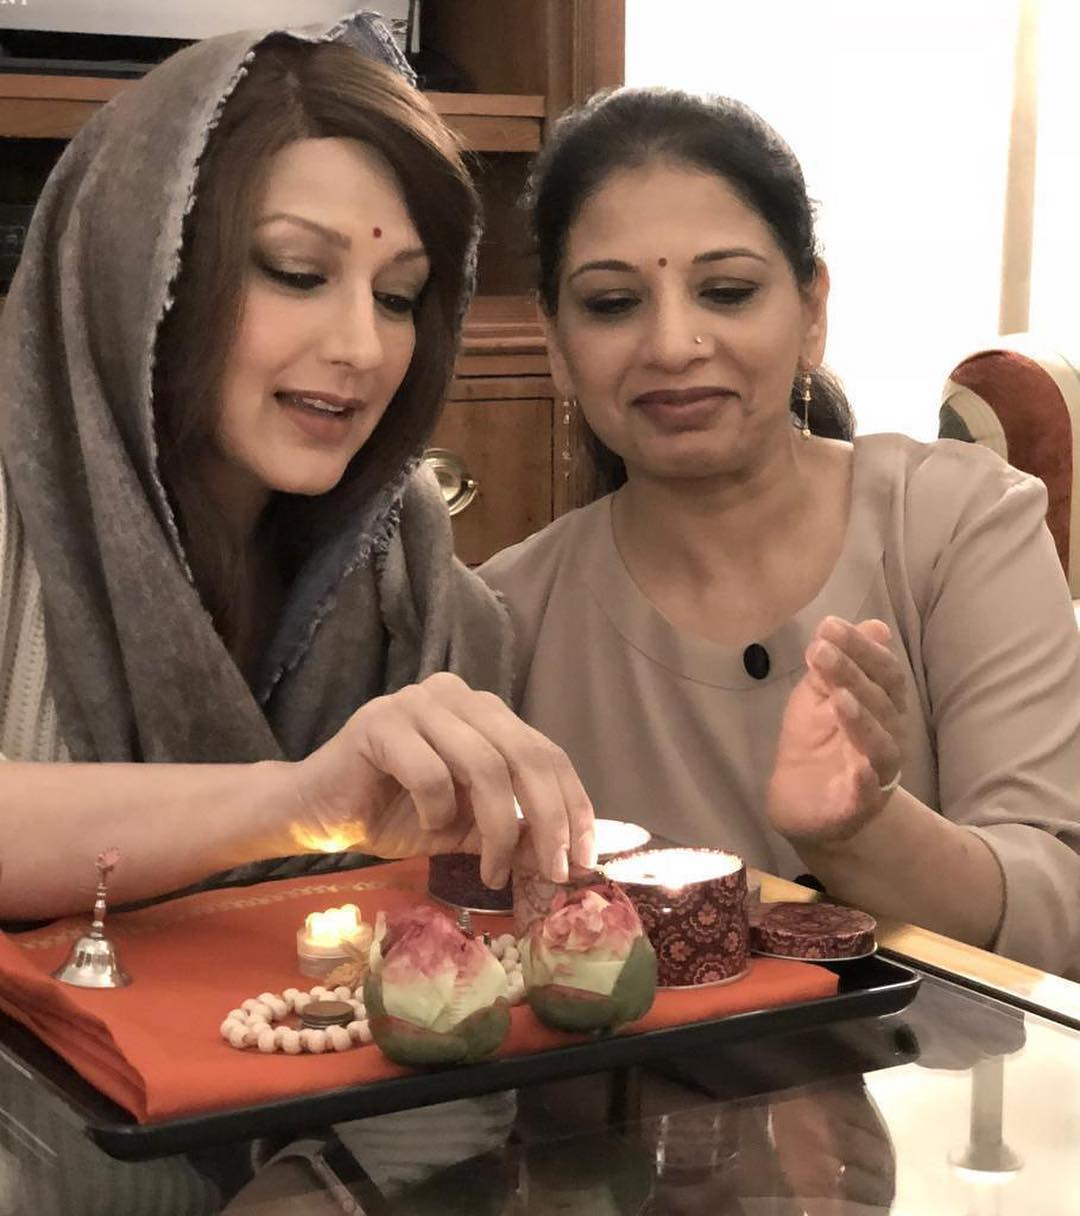 1-sonali-bendre-with-sister-on-instagram